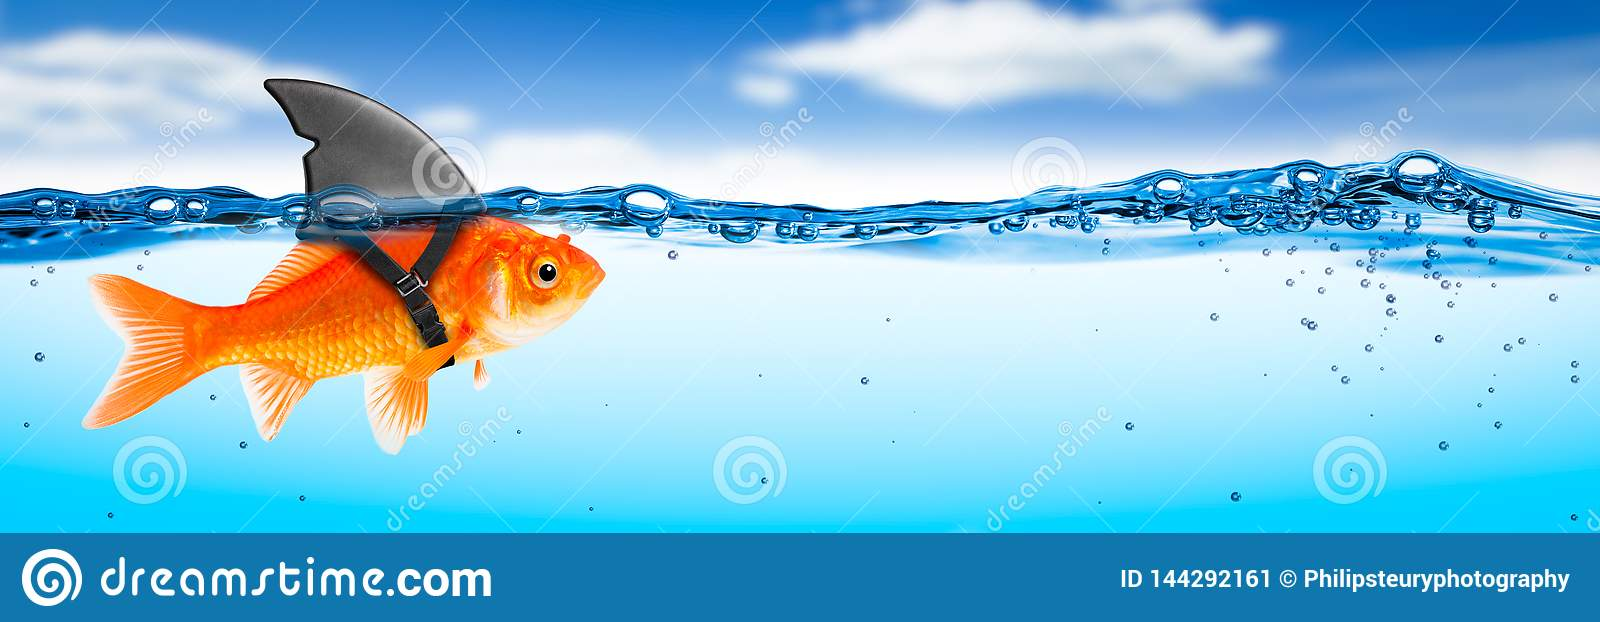 Brave Goldfish With Shark Fin Costume Stock Image - Image of